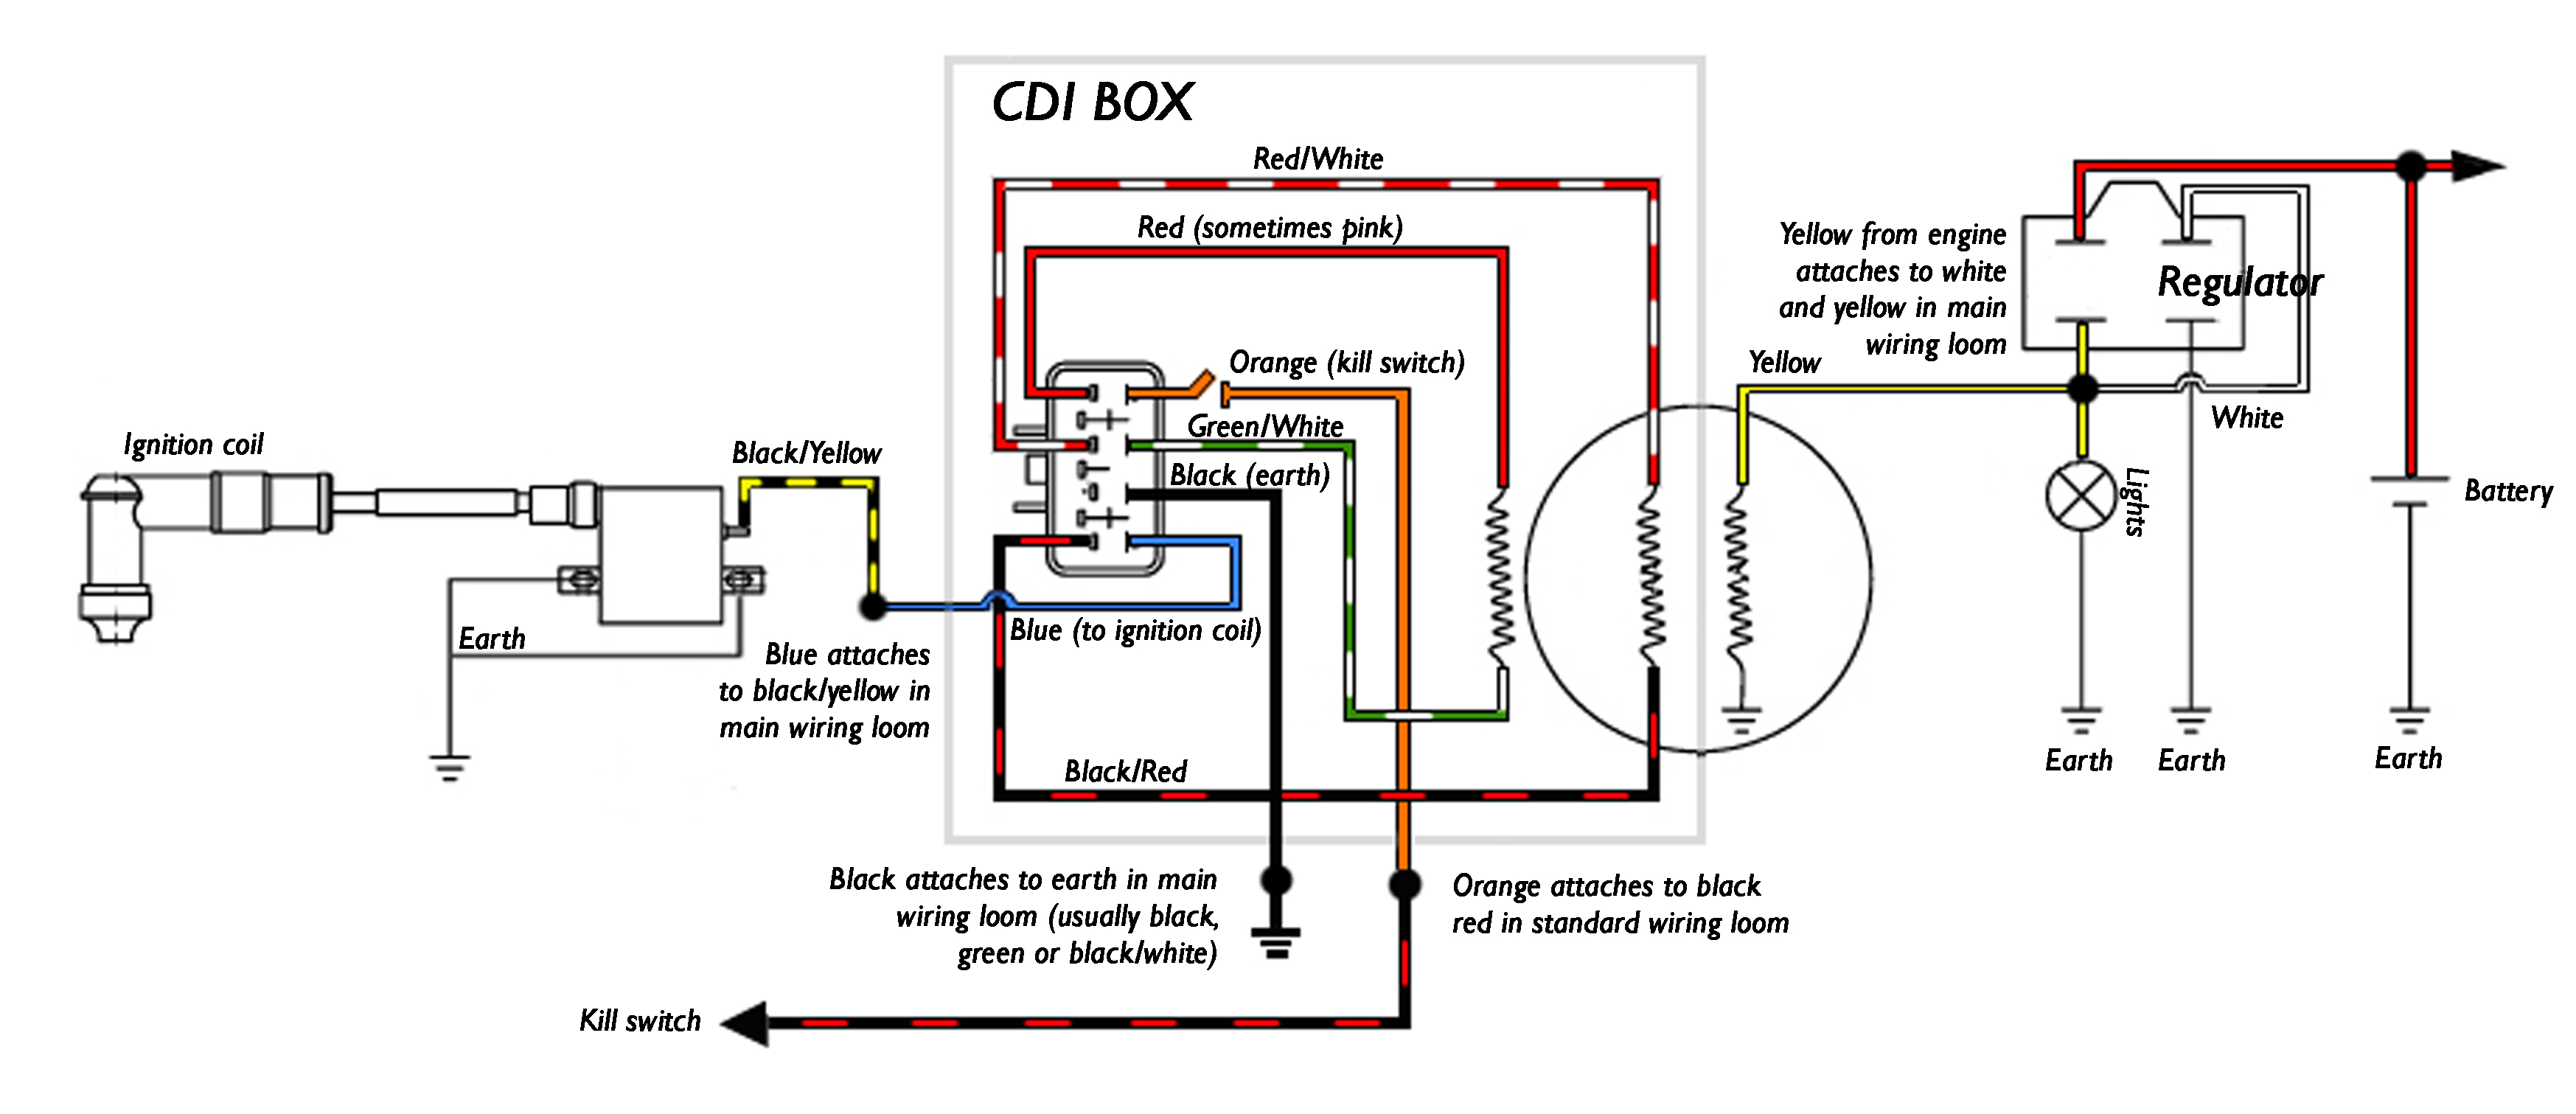 Zongshen Wiring Diagram Similiar Four Wire Boss Bv9980nv Pdf Image On